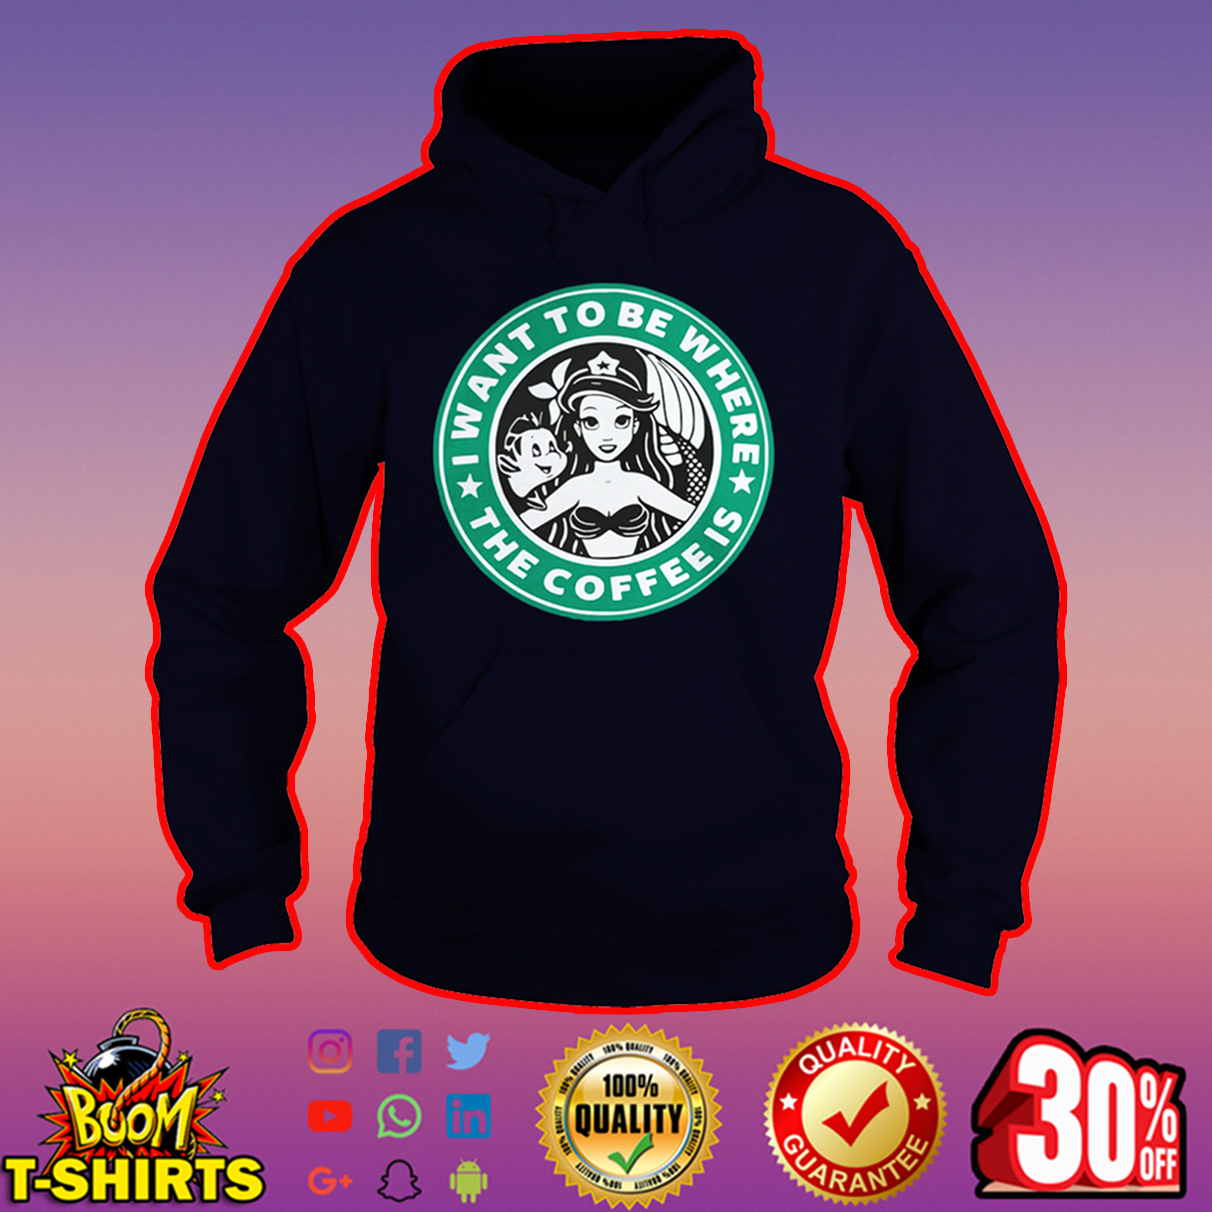 I want to be where the coffee is Ariel Starbucks hoodie